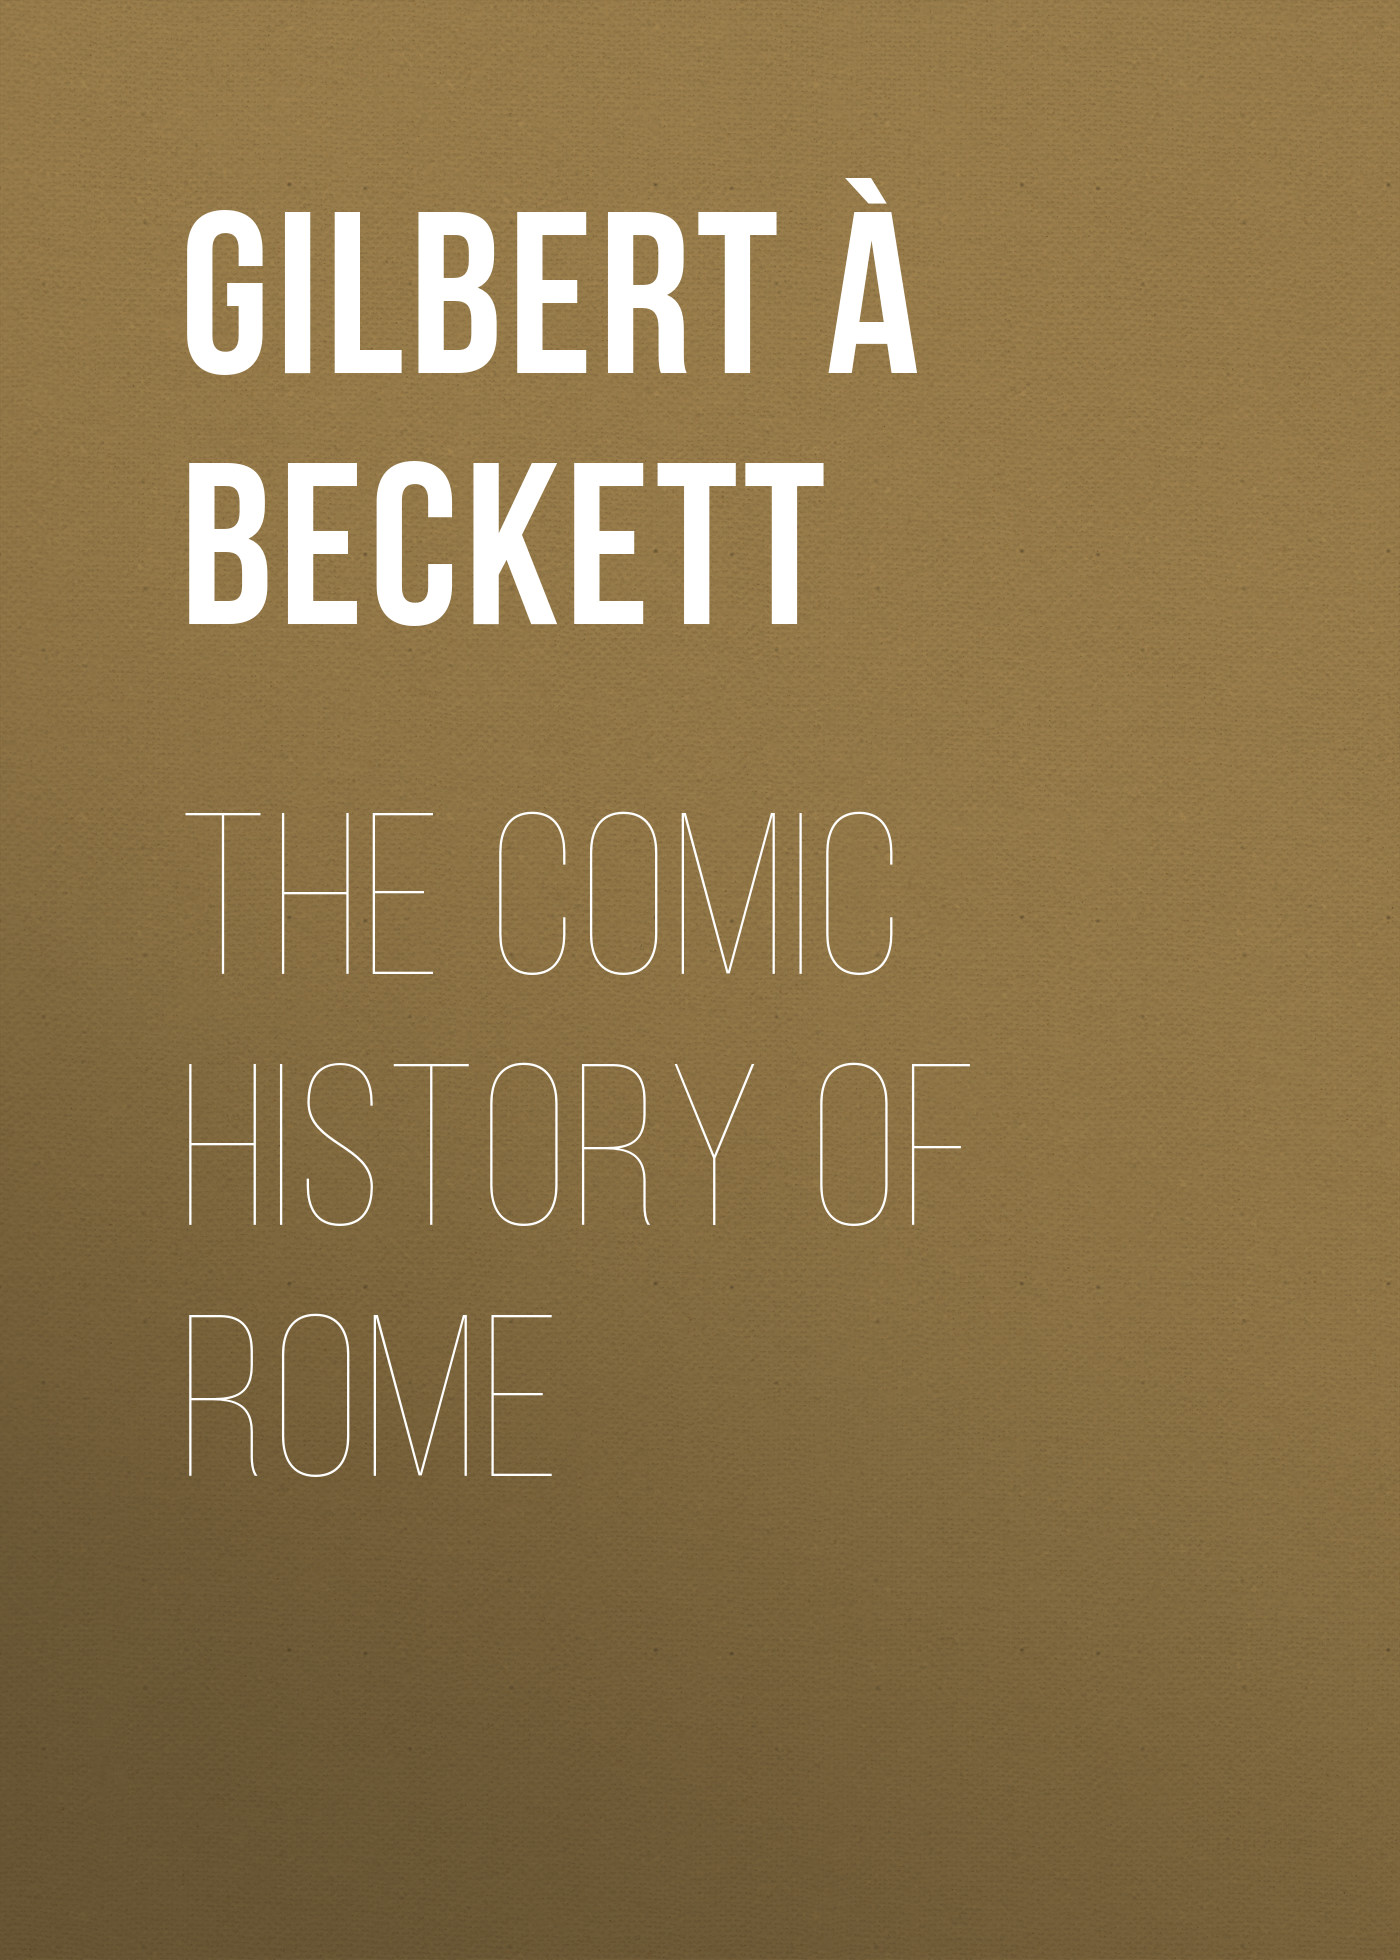 À Beckett Gilbert Abbott The Comic History of Rome цена и фото